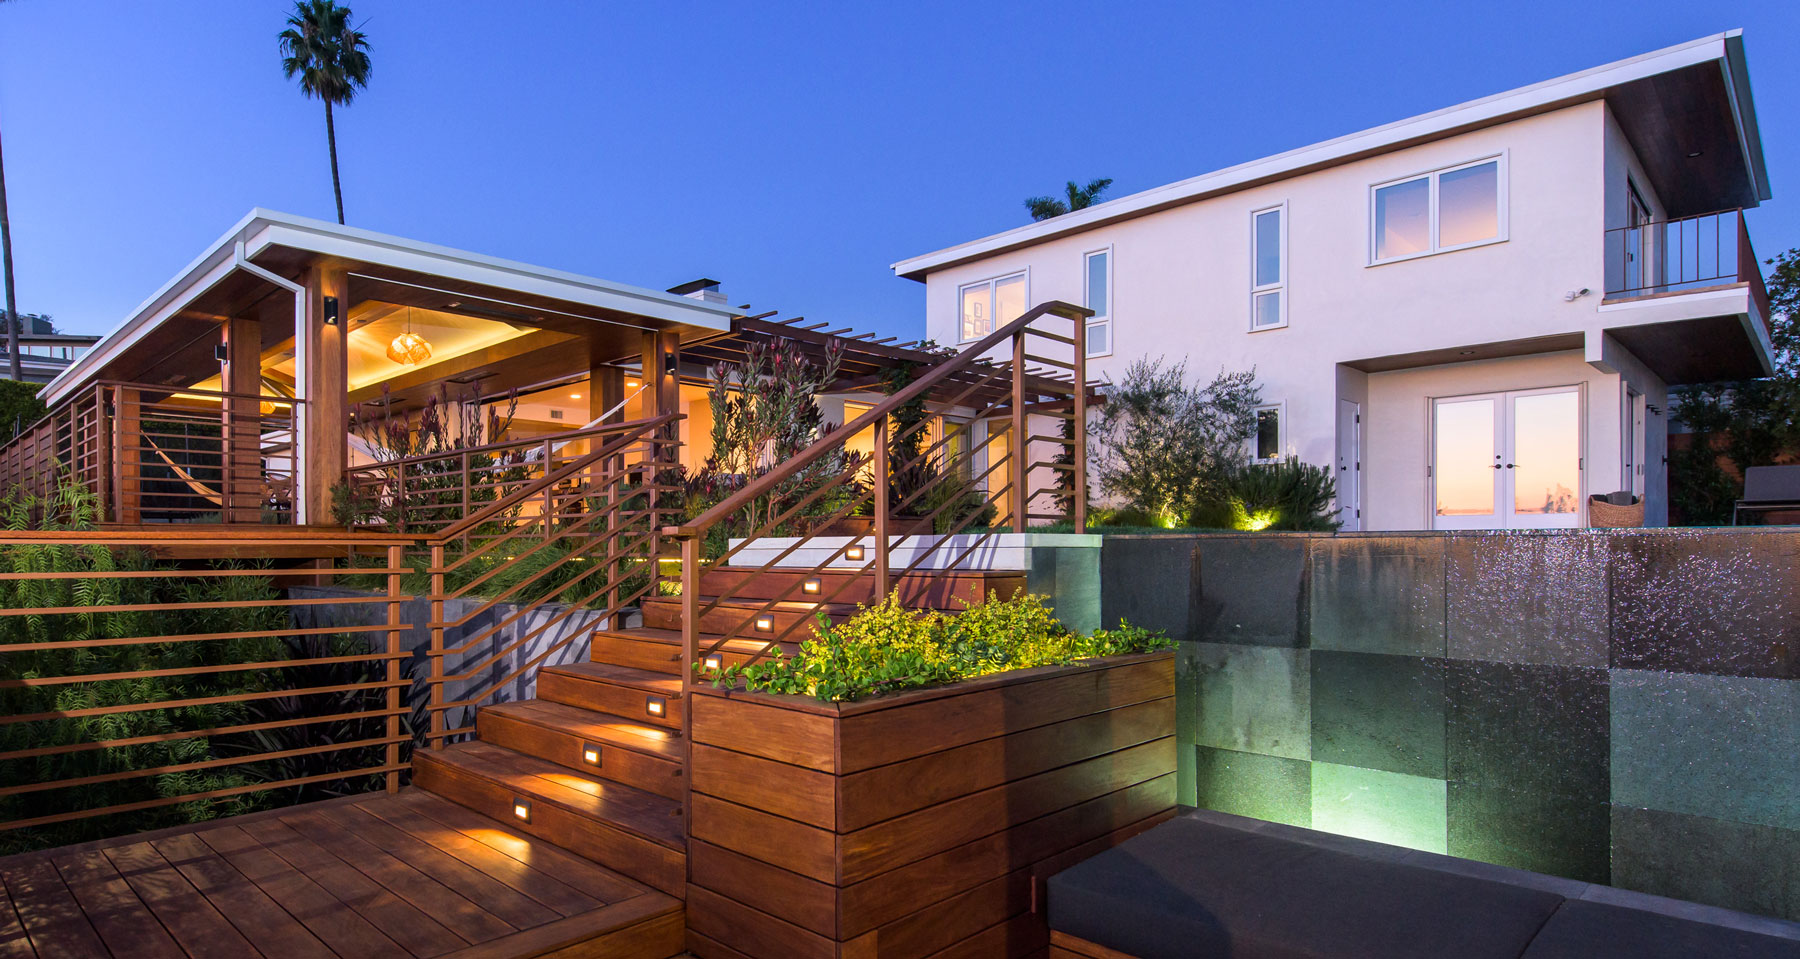 After picture of back yard renovation in Pacific Palisades